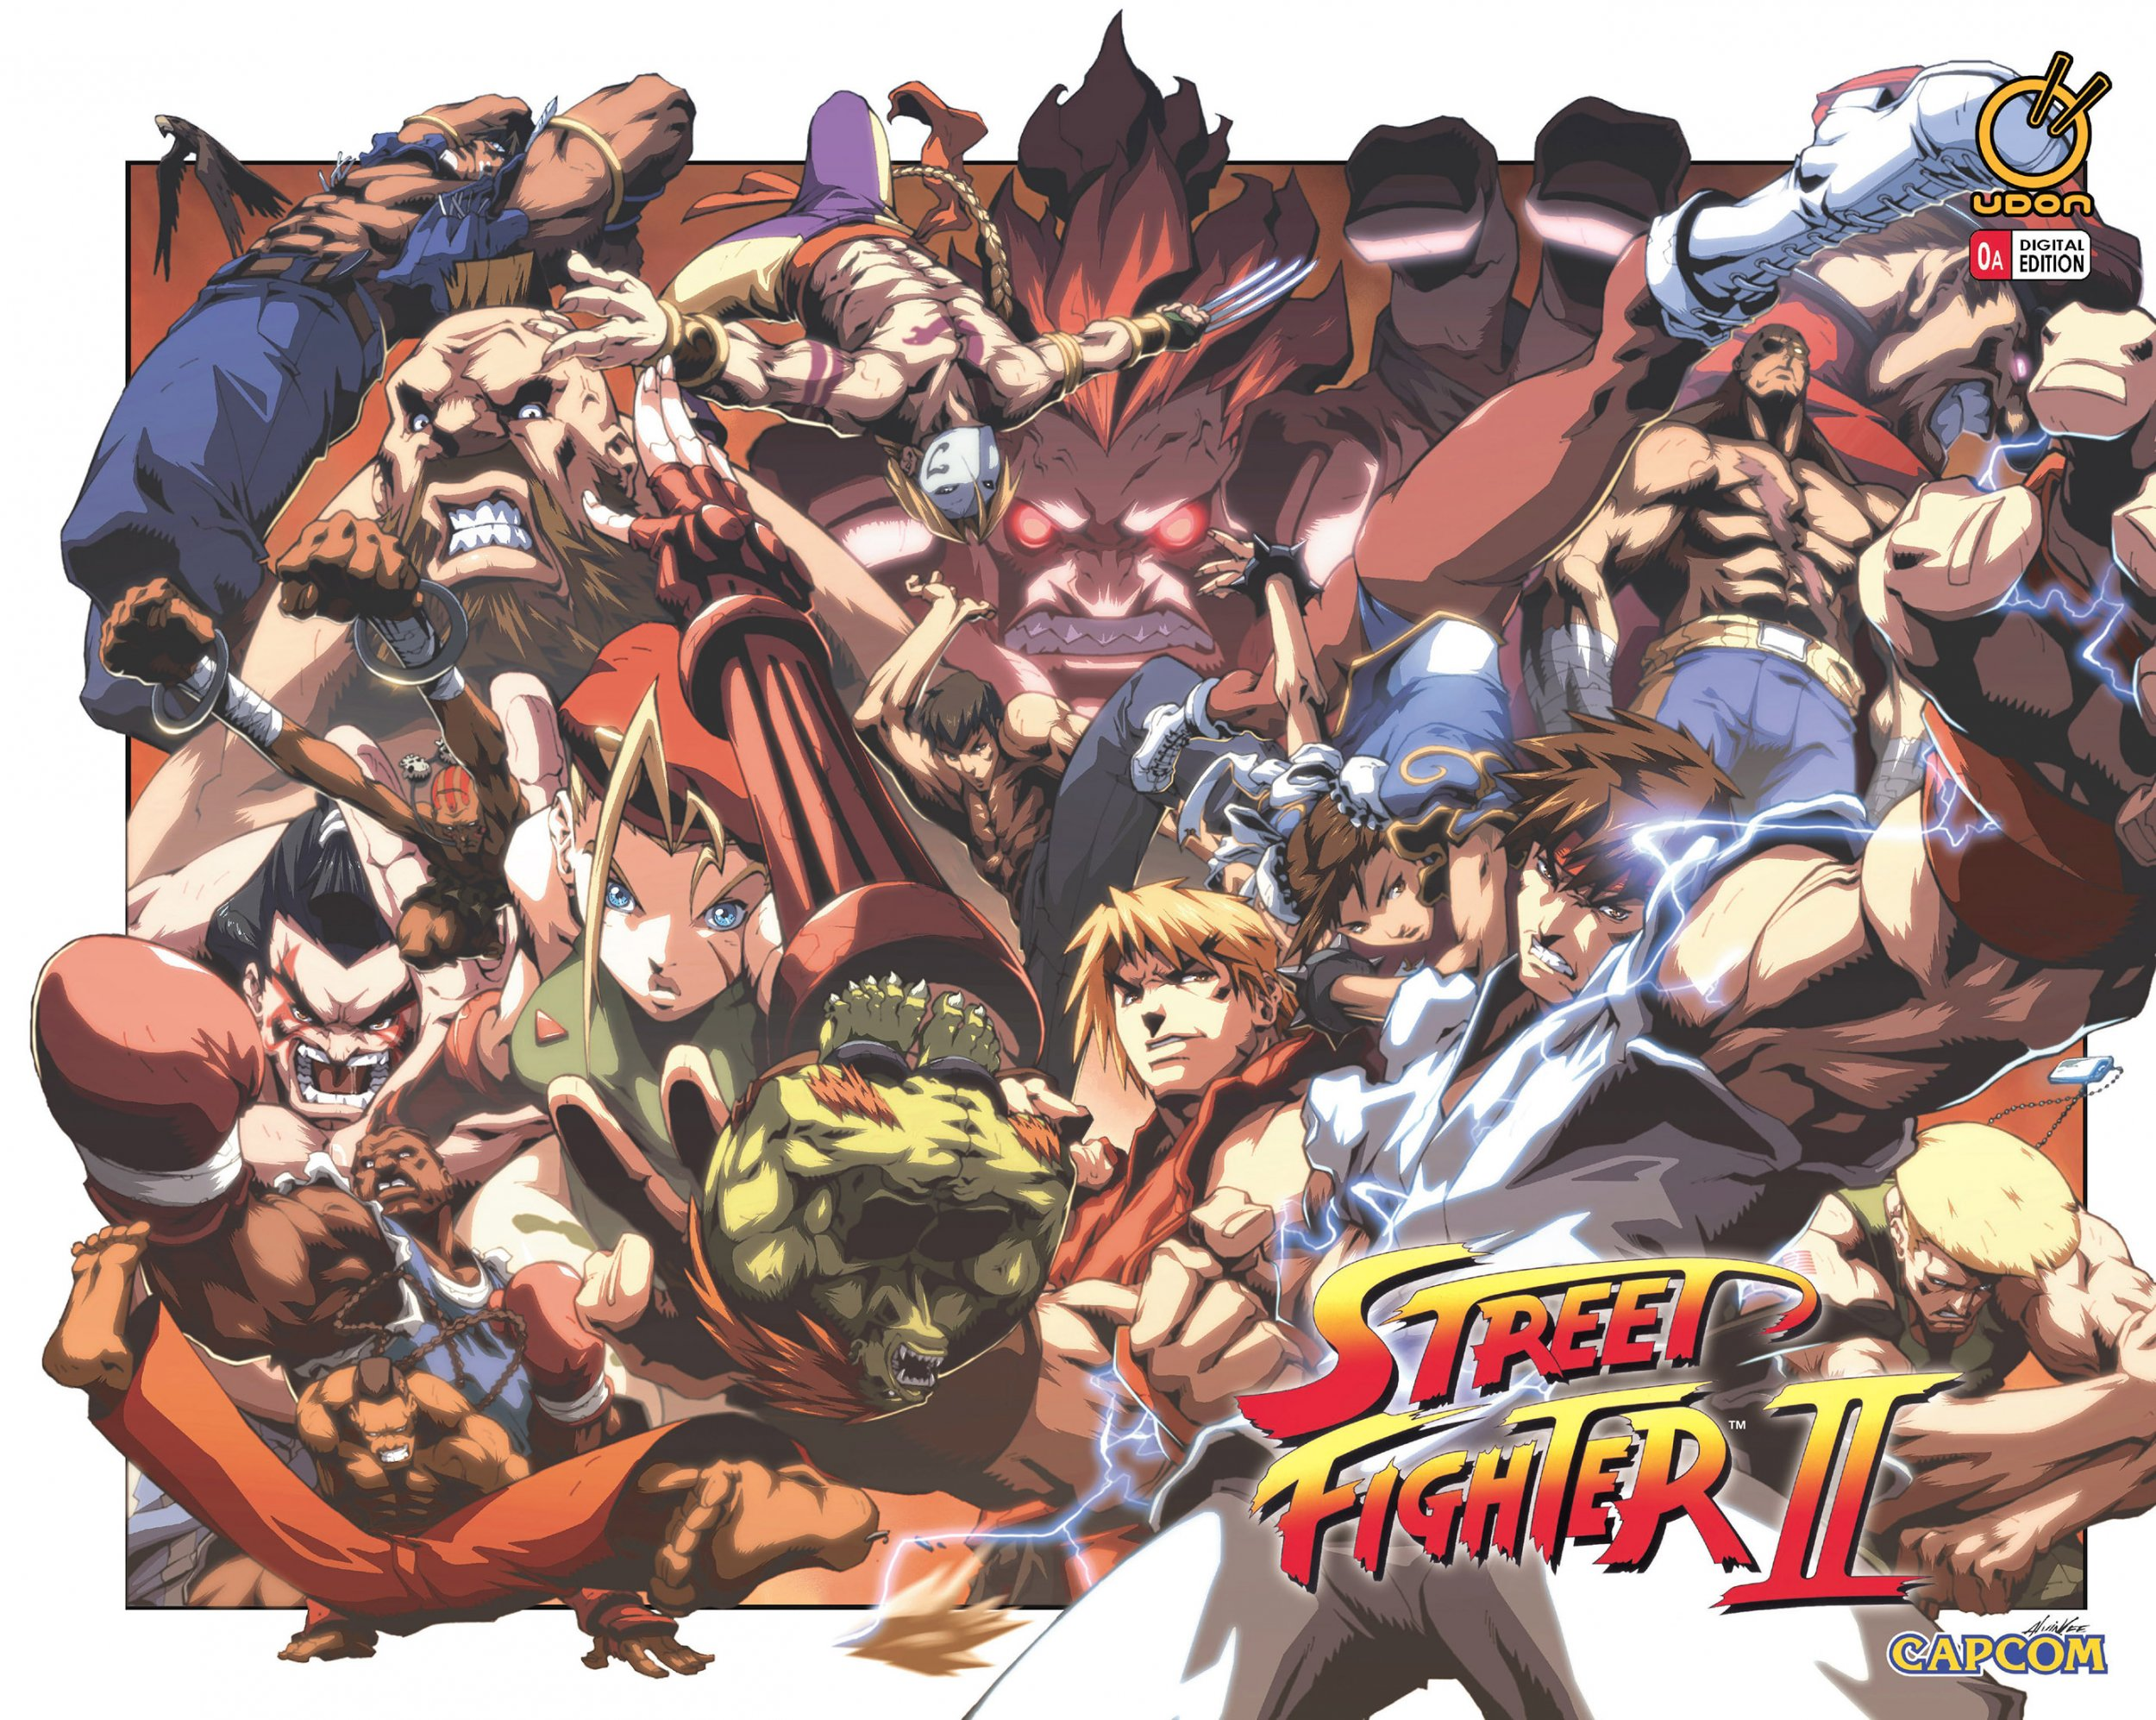 Street Fighter II Issue 0 (October 2005) (cover a)